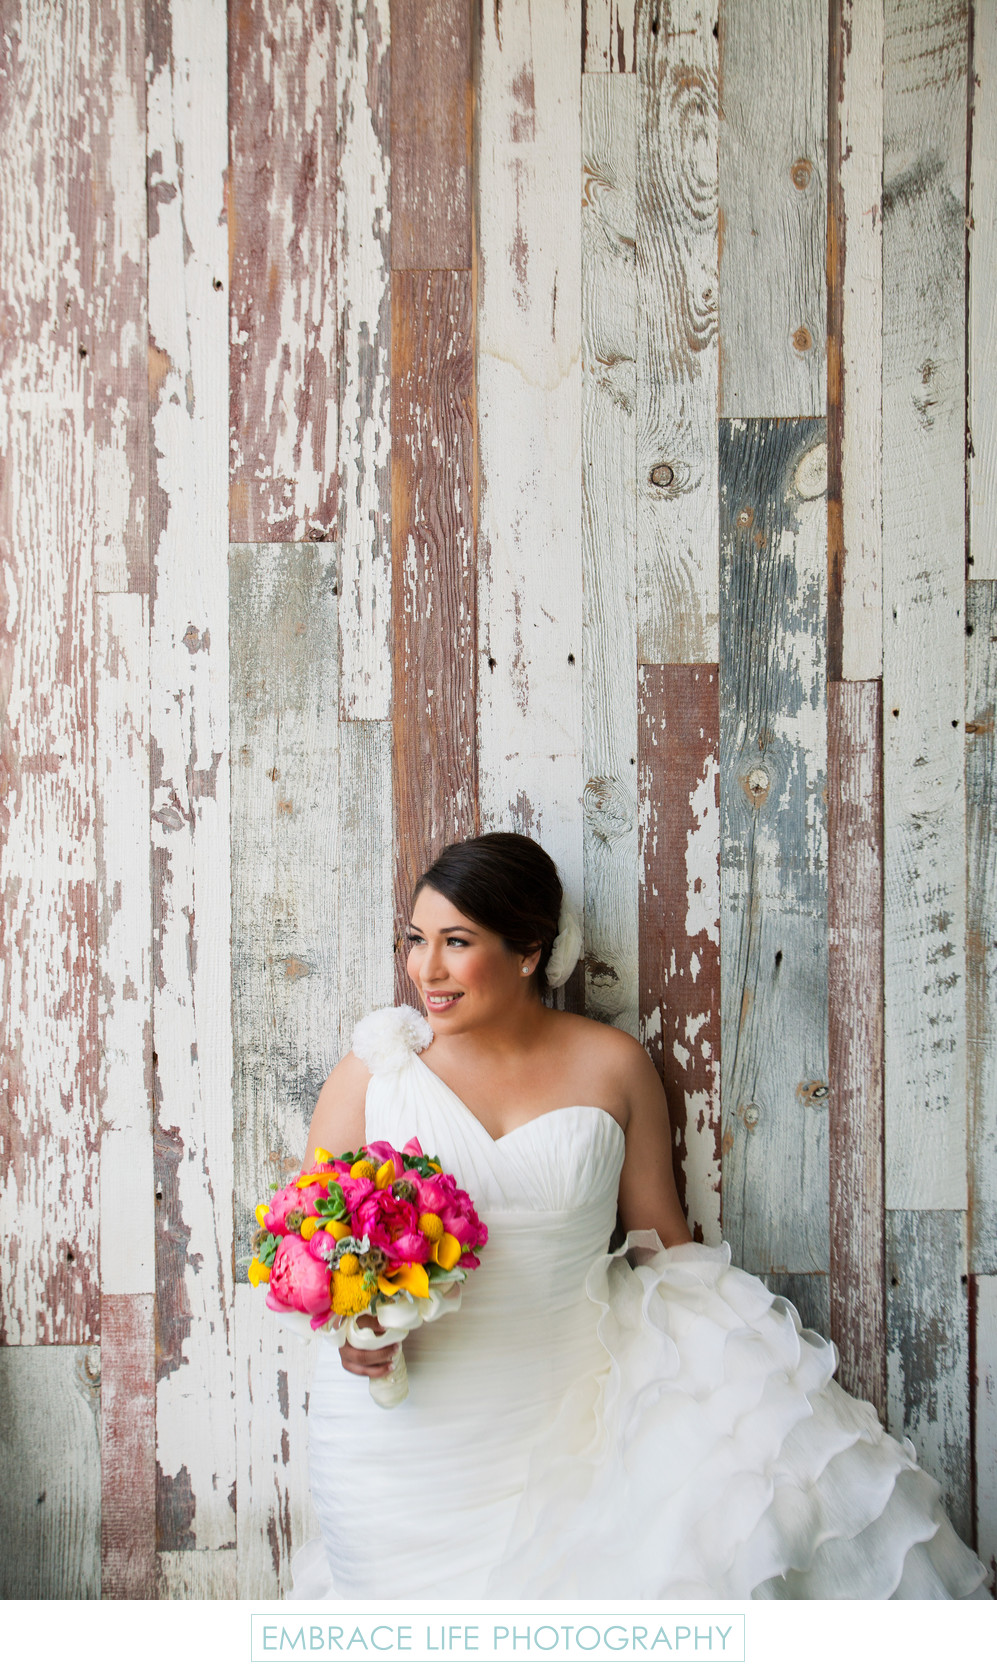 Hotel Maya Wedding Photographer, Long Beach, California